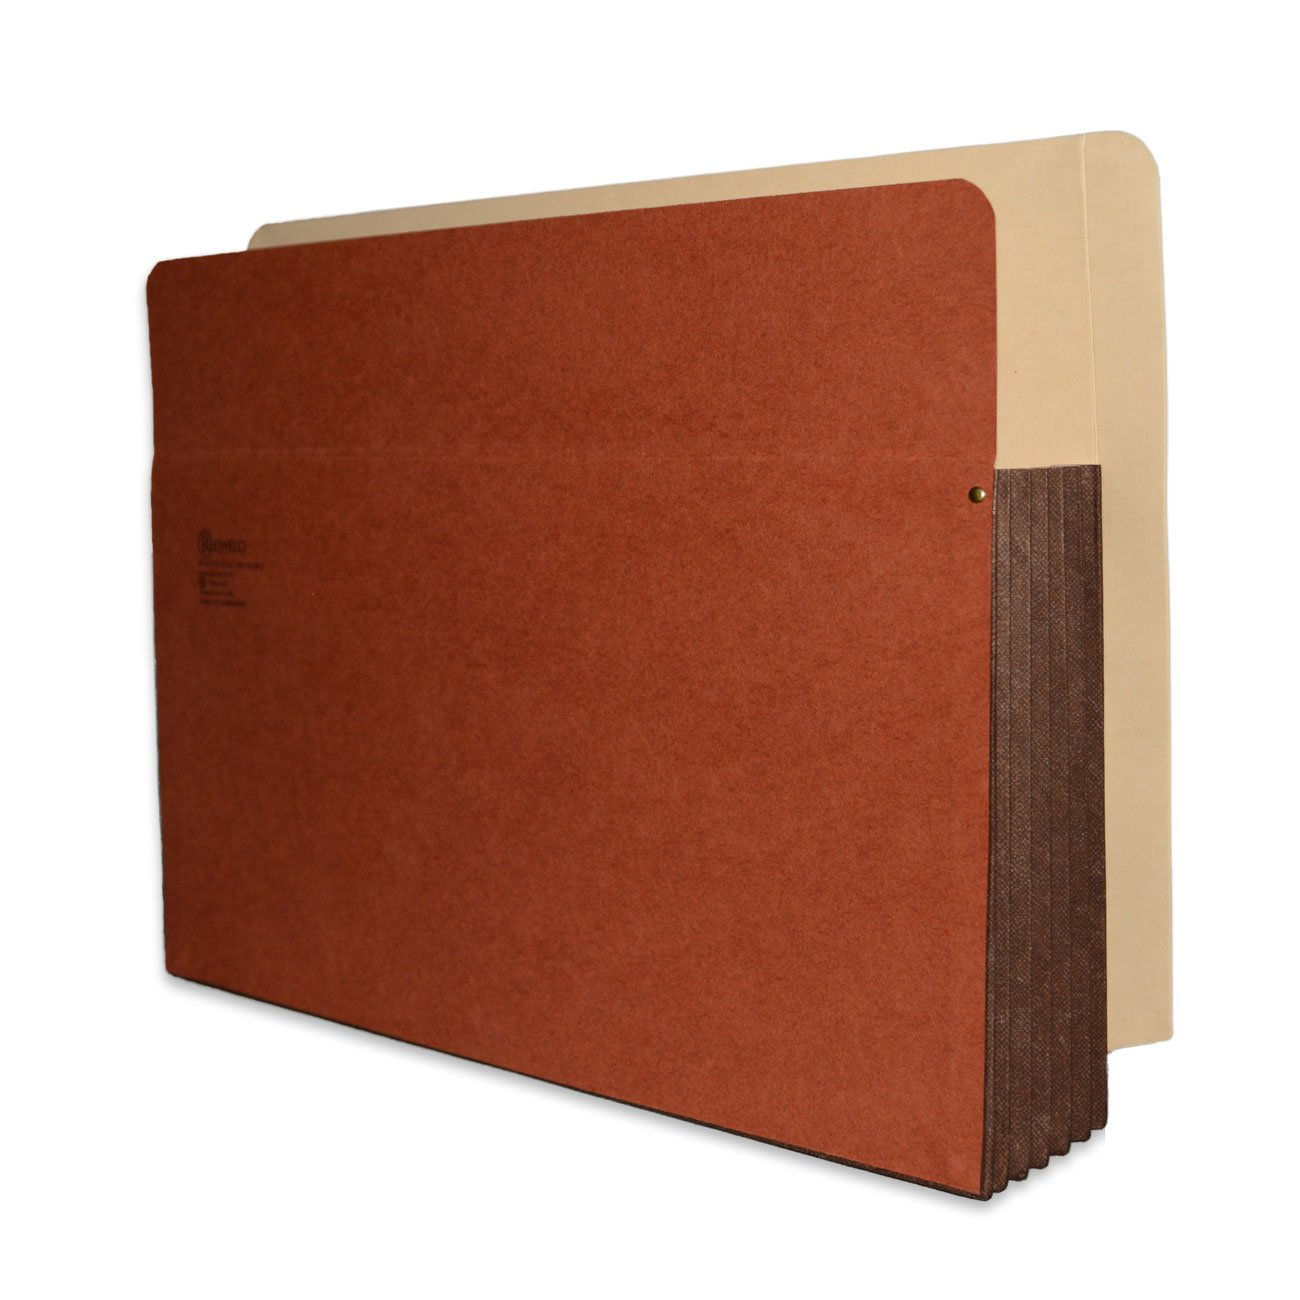 Redweld End Tab File Pocket, Letter Size with 5 1/4'' Fully Reinforced Tyvek Gusset, 50 per Carton